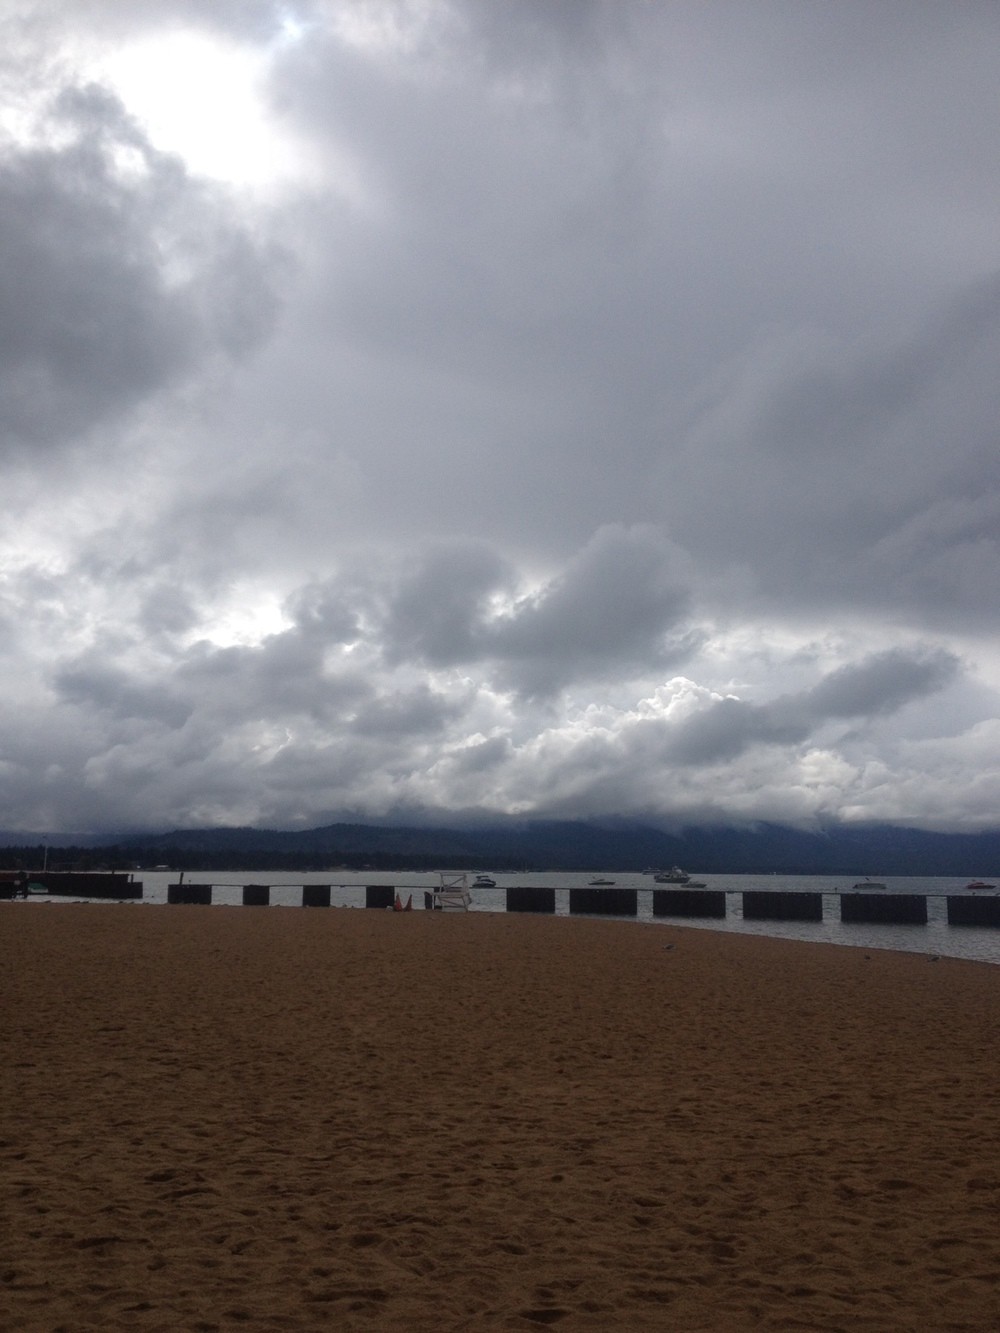 Gloomy weather in South Tahoe.